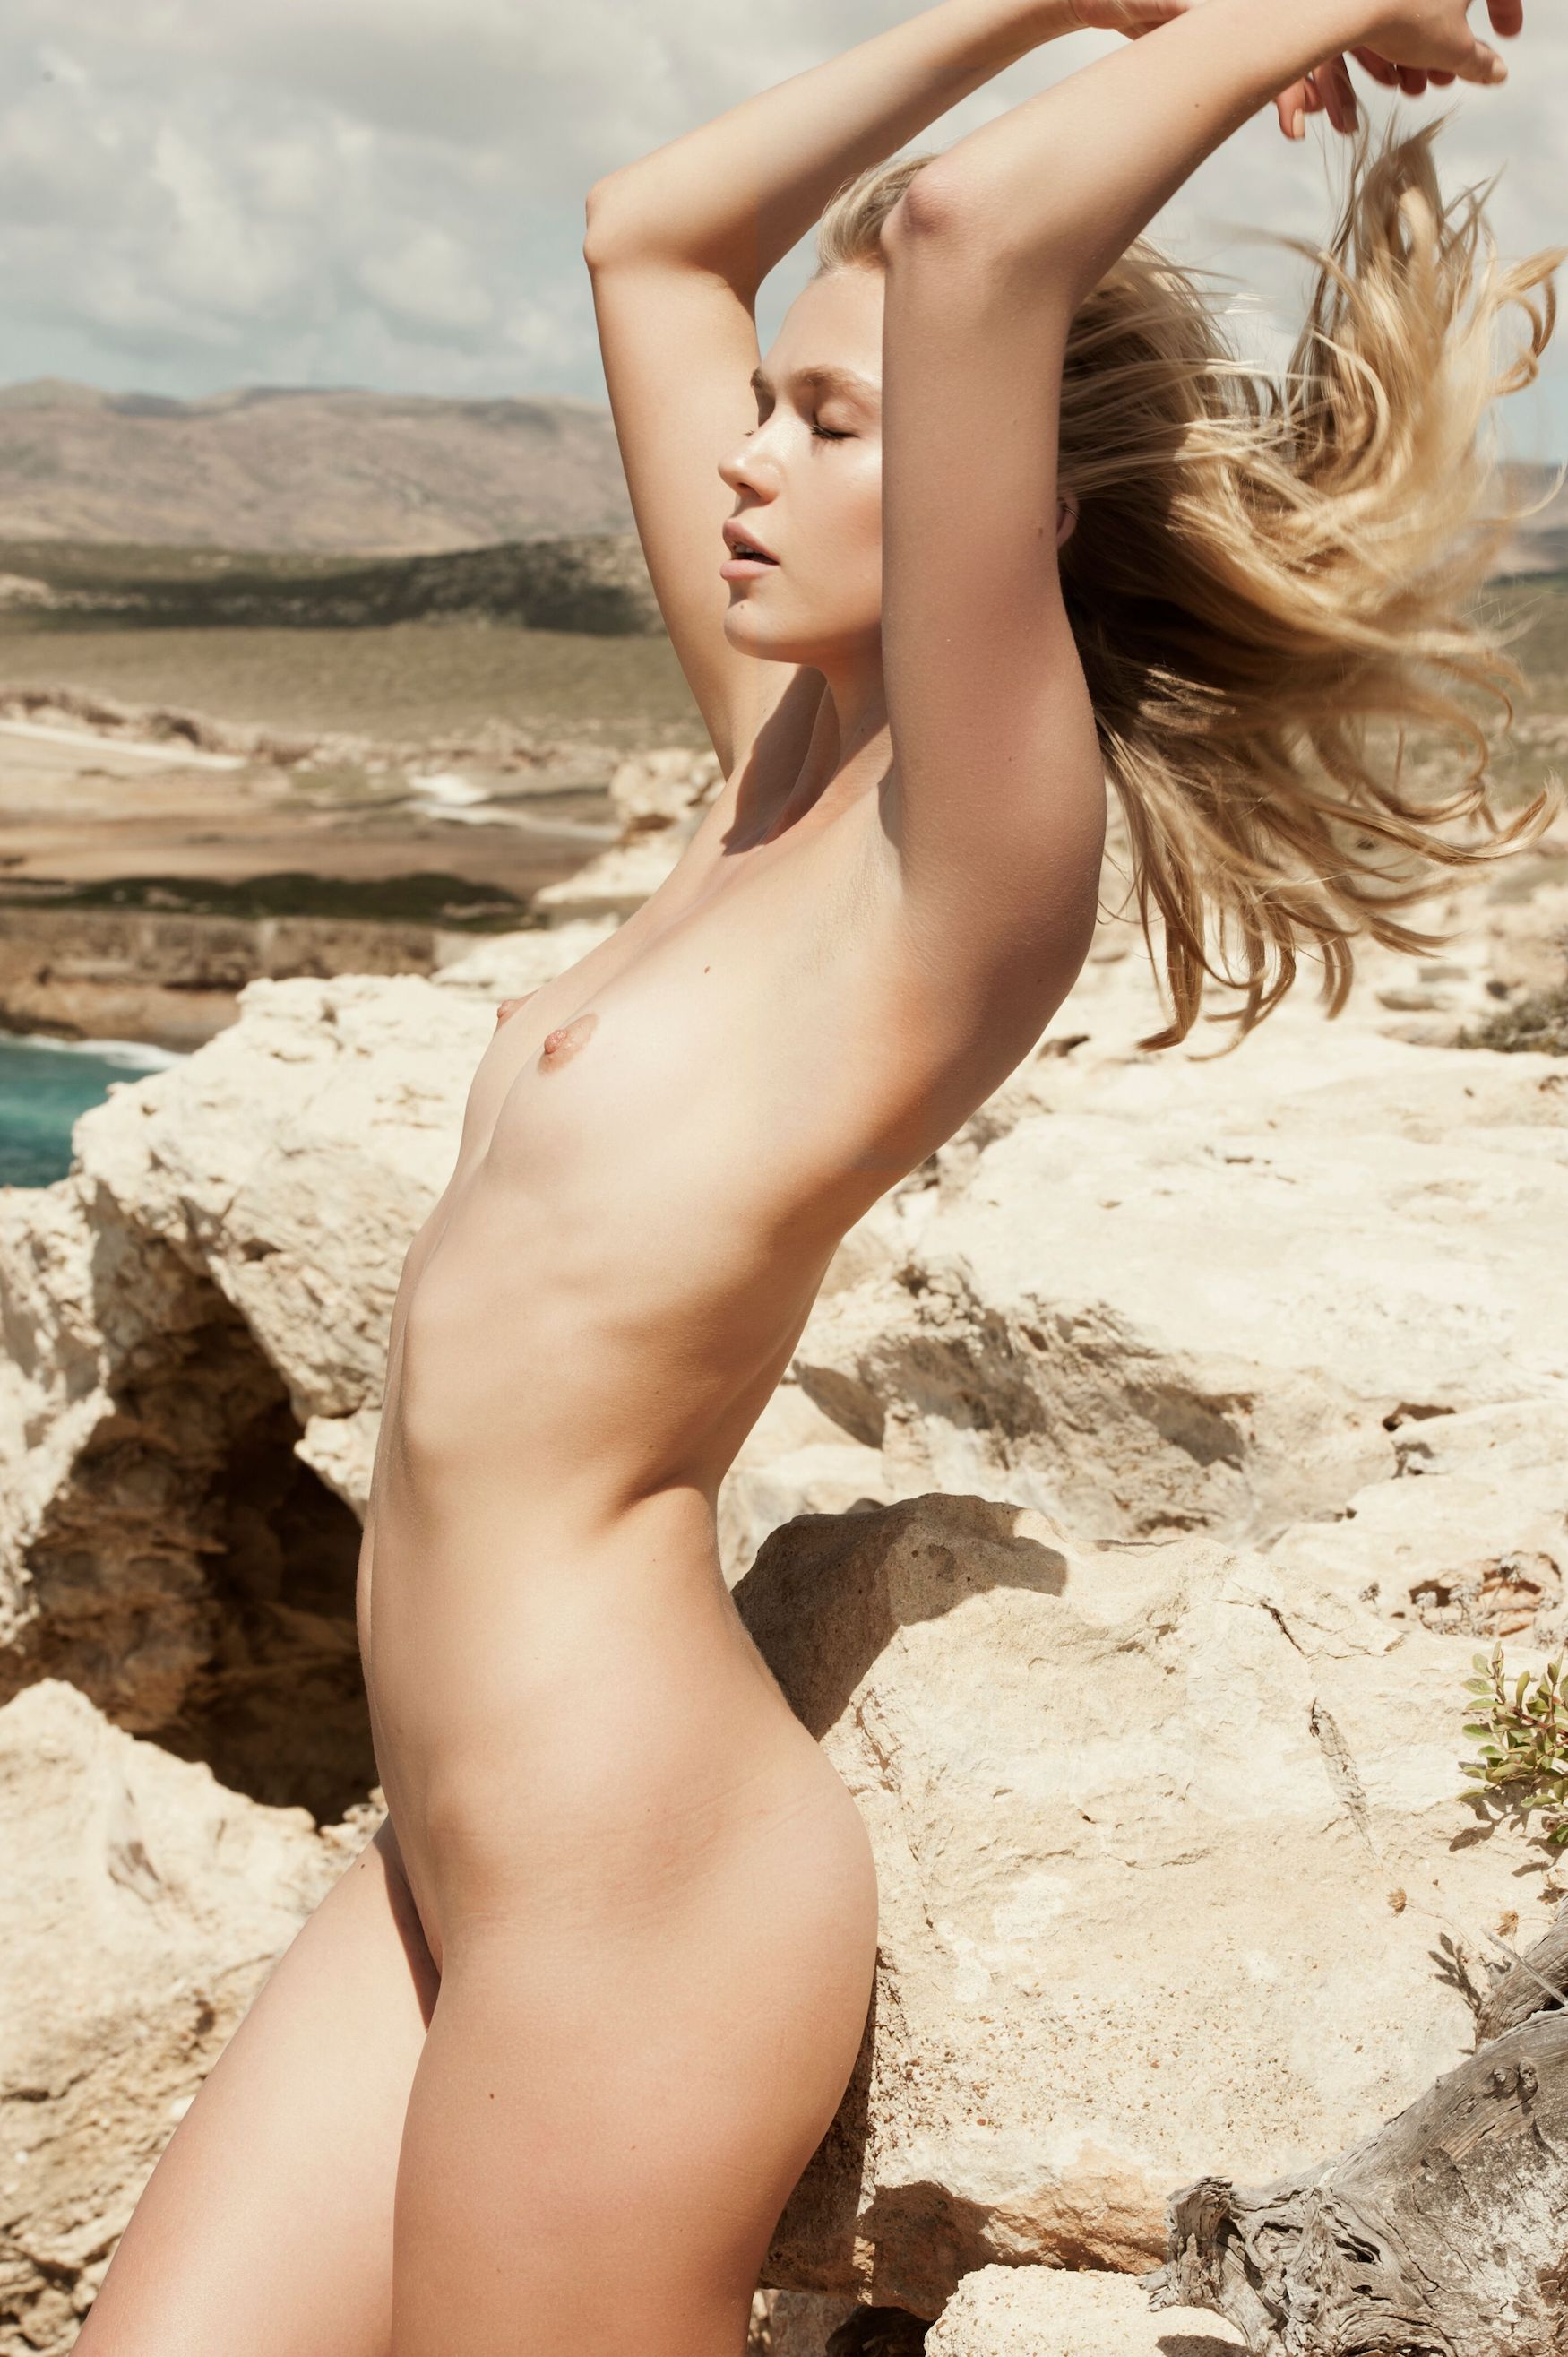 Lisa from saved by the bell naked